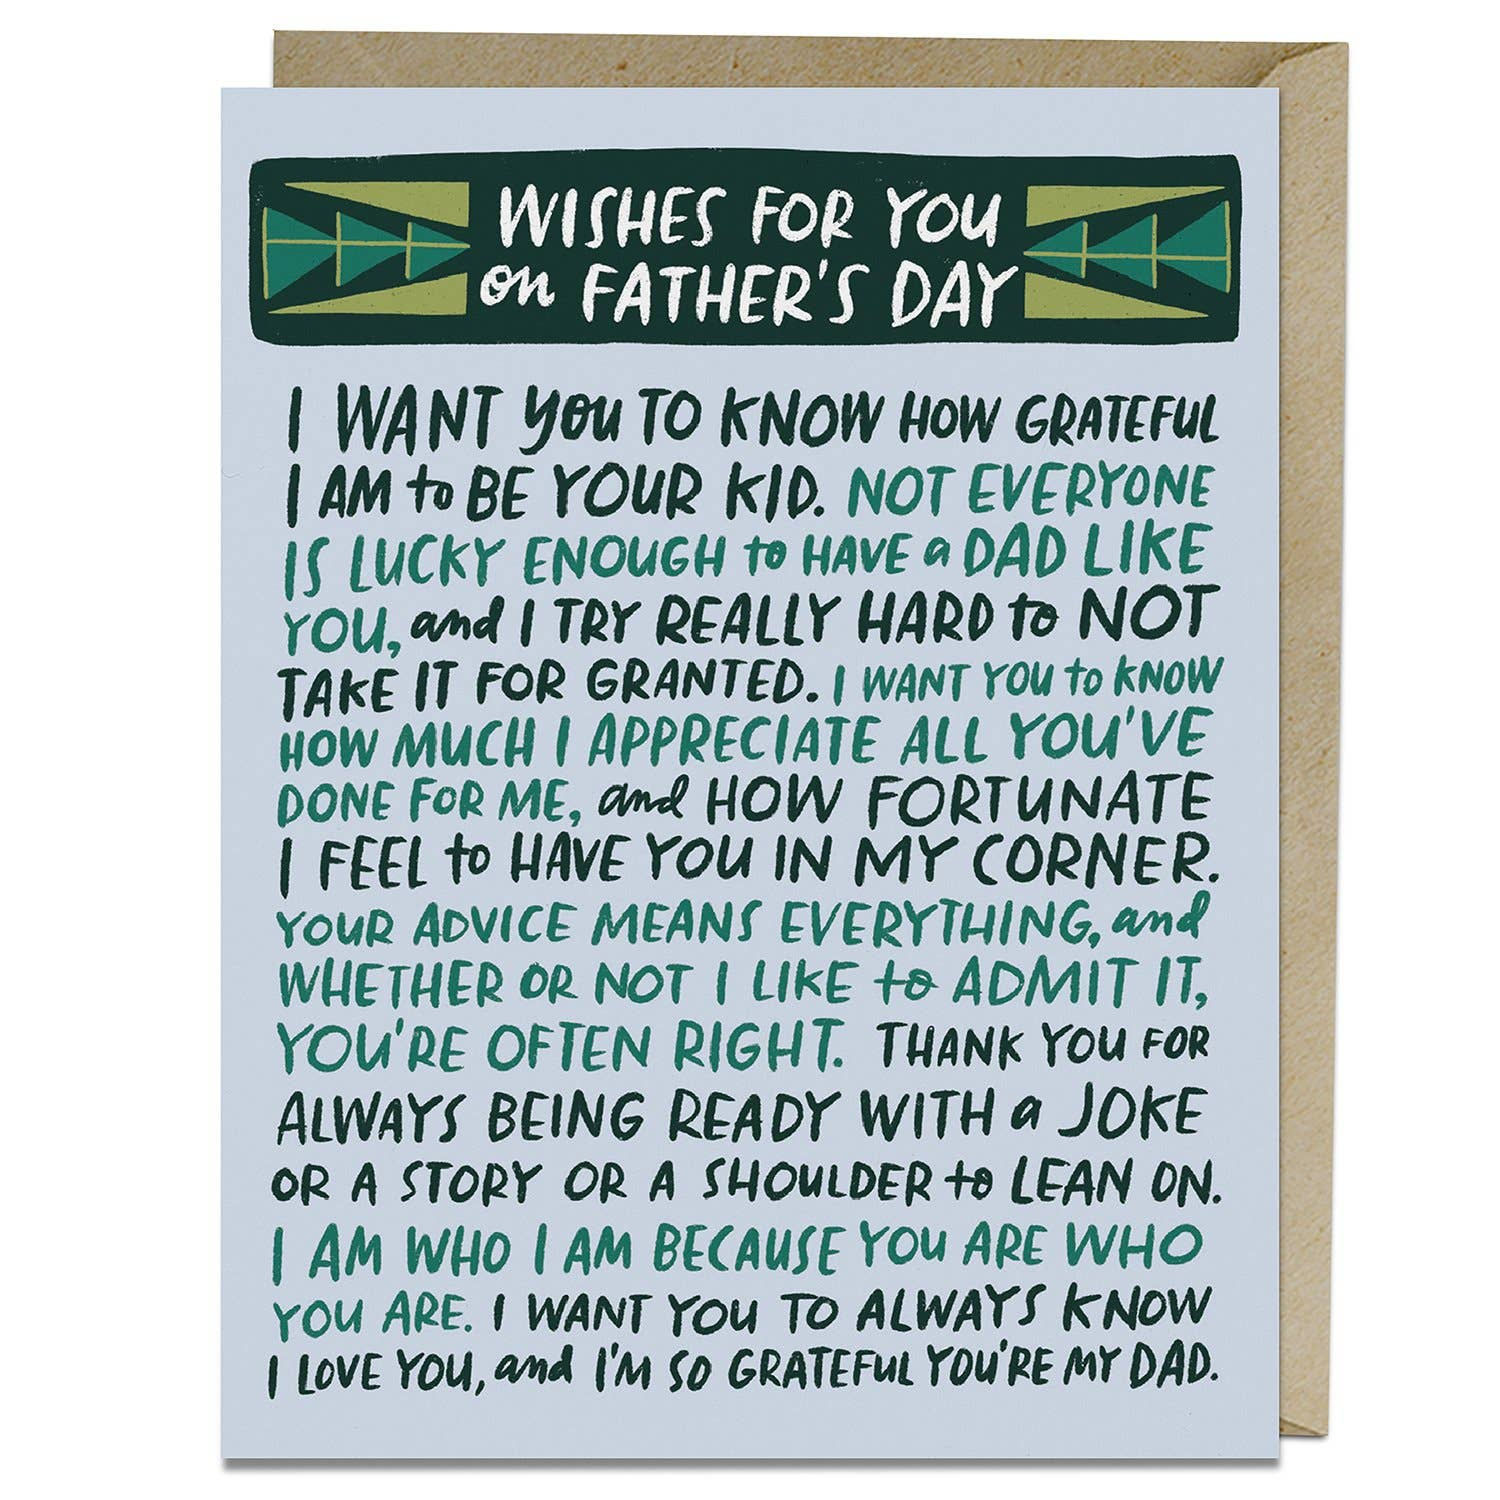 Wishes For You Fathers Day Card